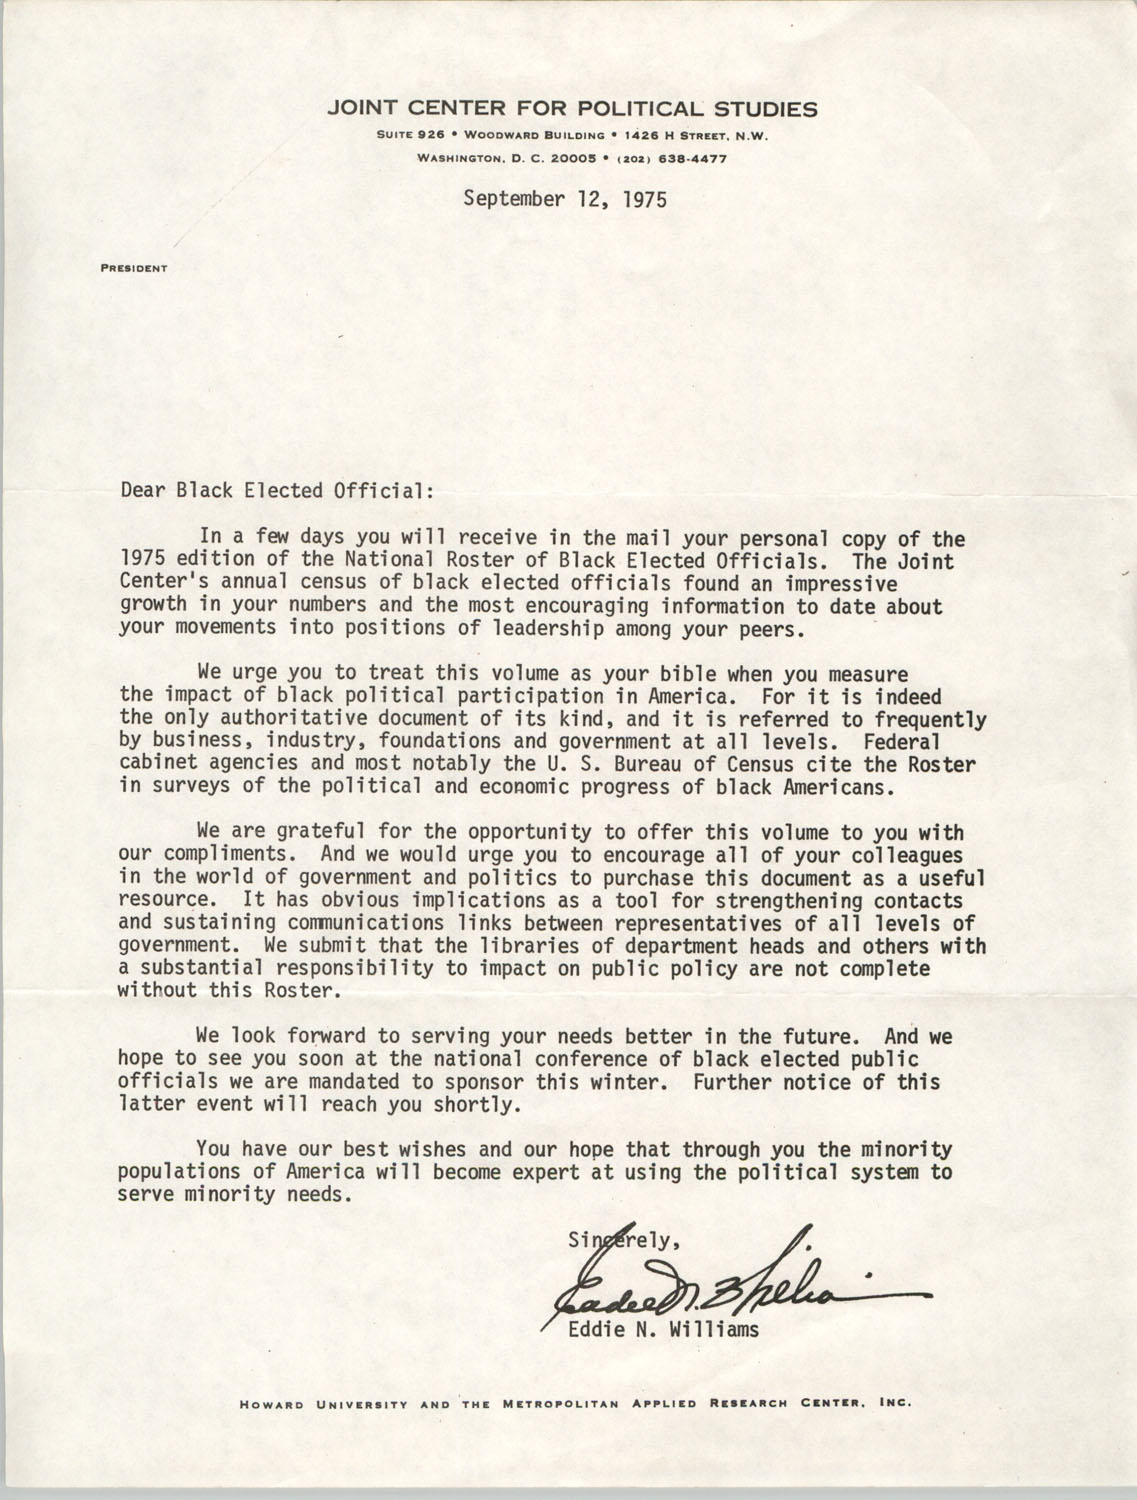 Letter from Eddie N. Williams to